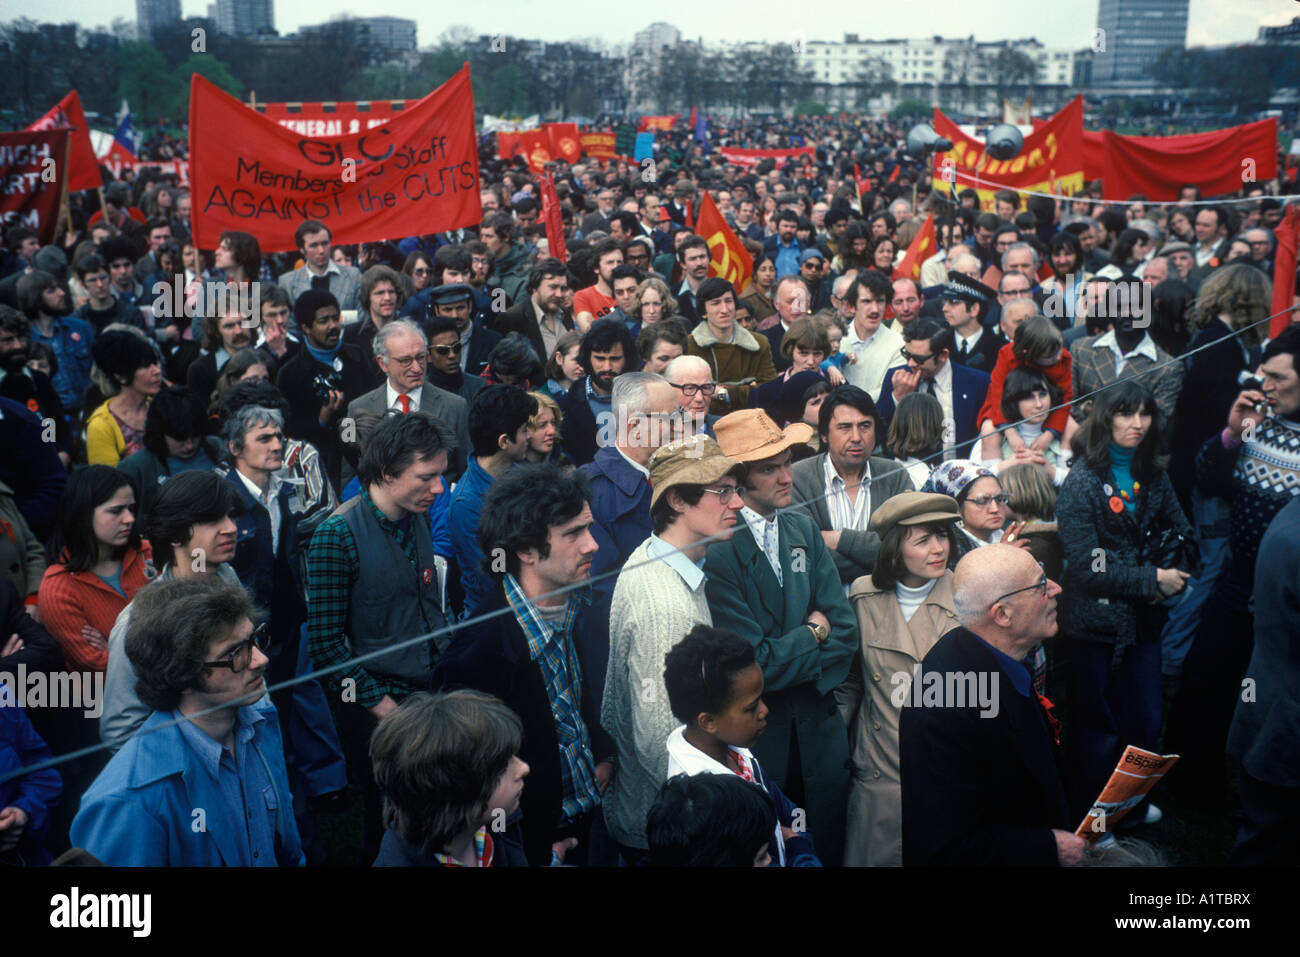 Crowds of socialists gather to hear speeches at the May Day rally in Hyde Park London England 1977 - Stock Image